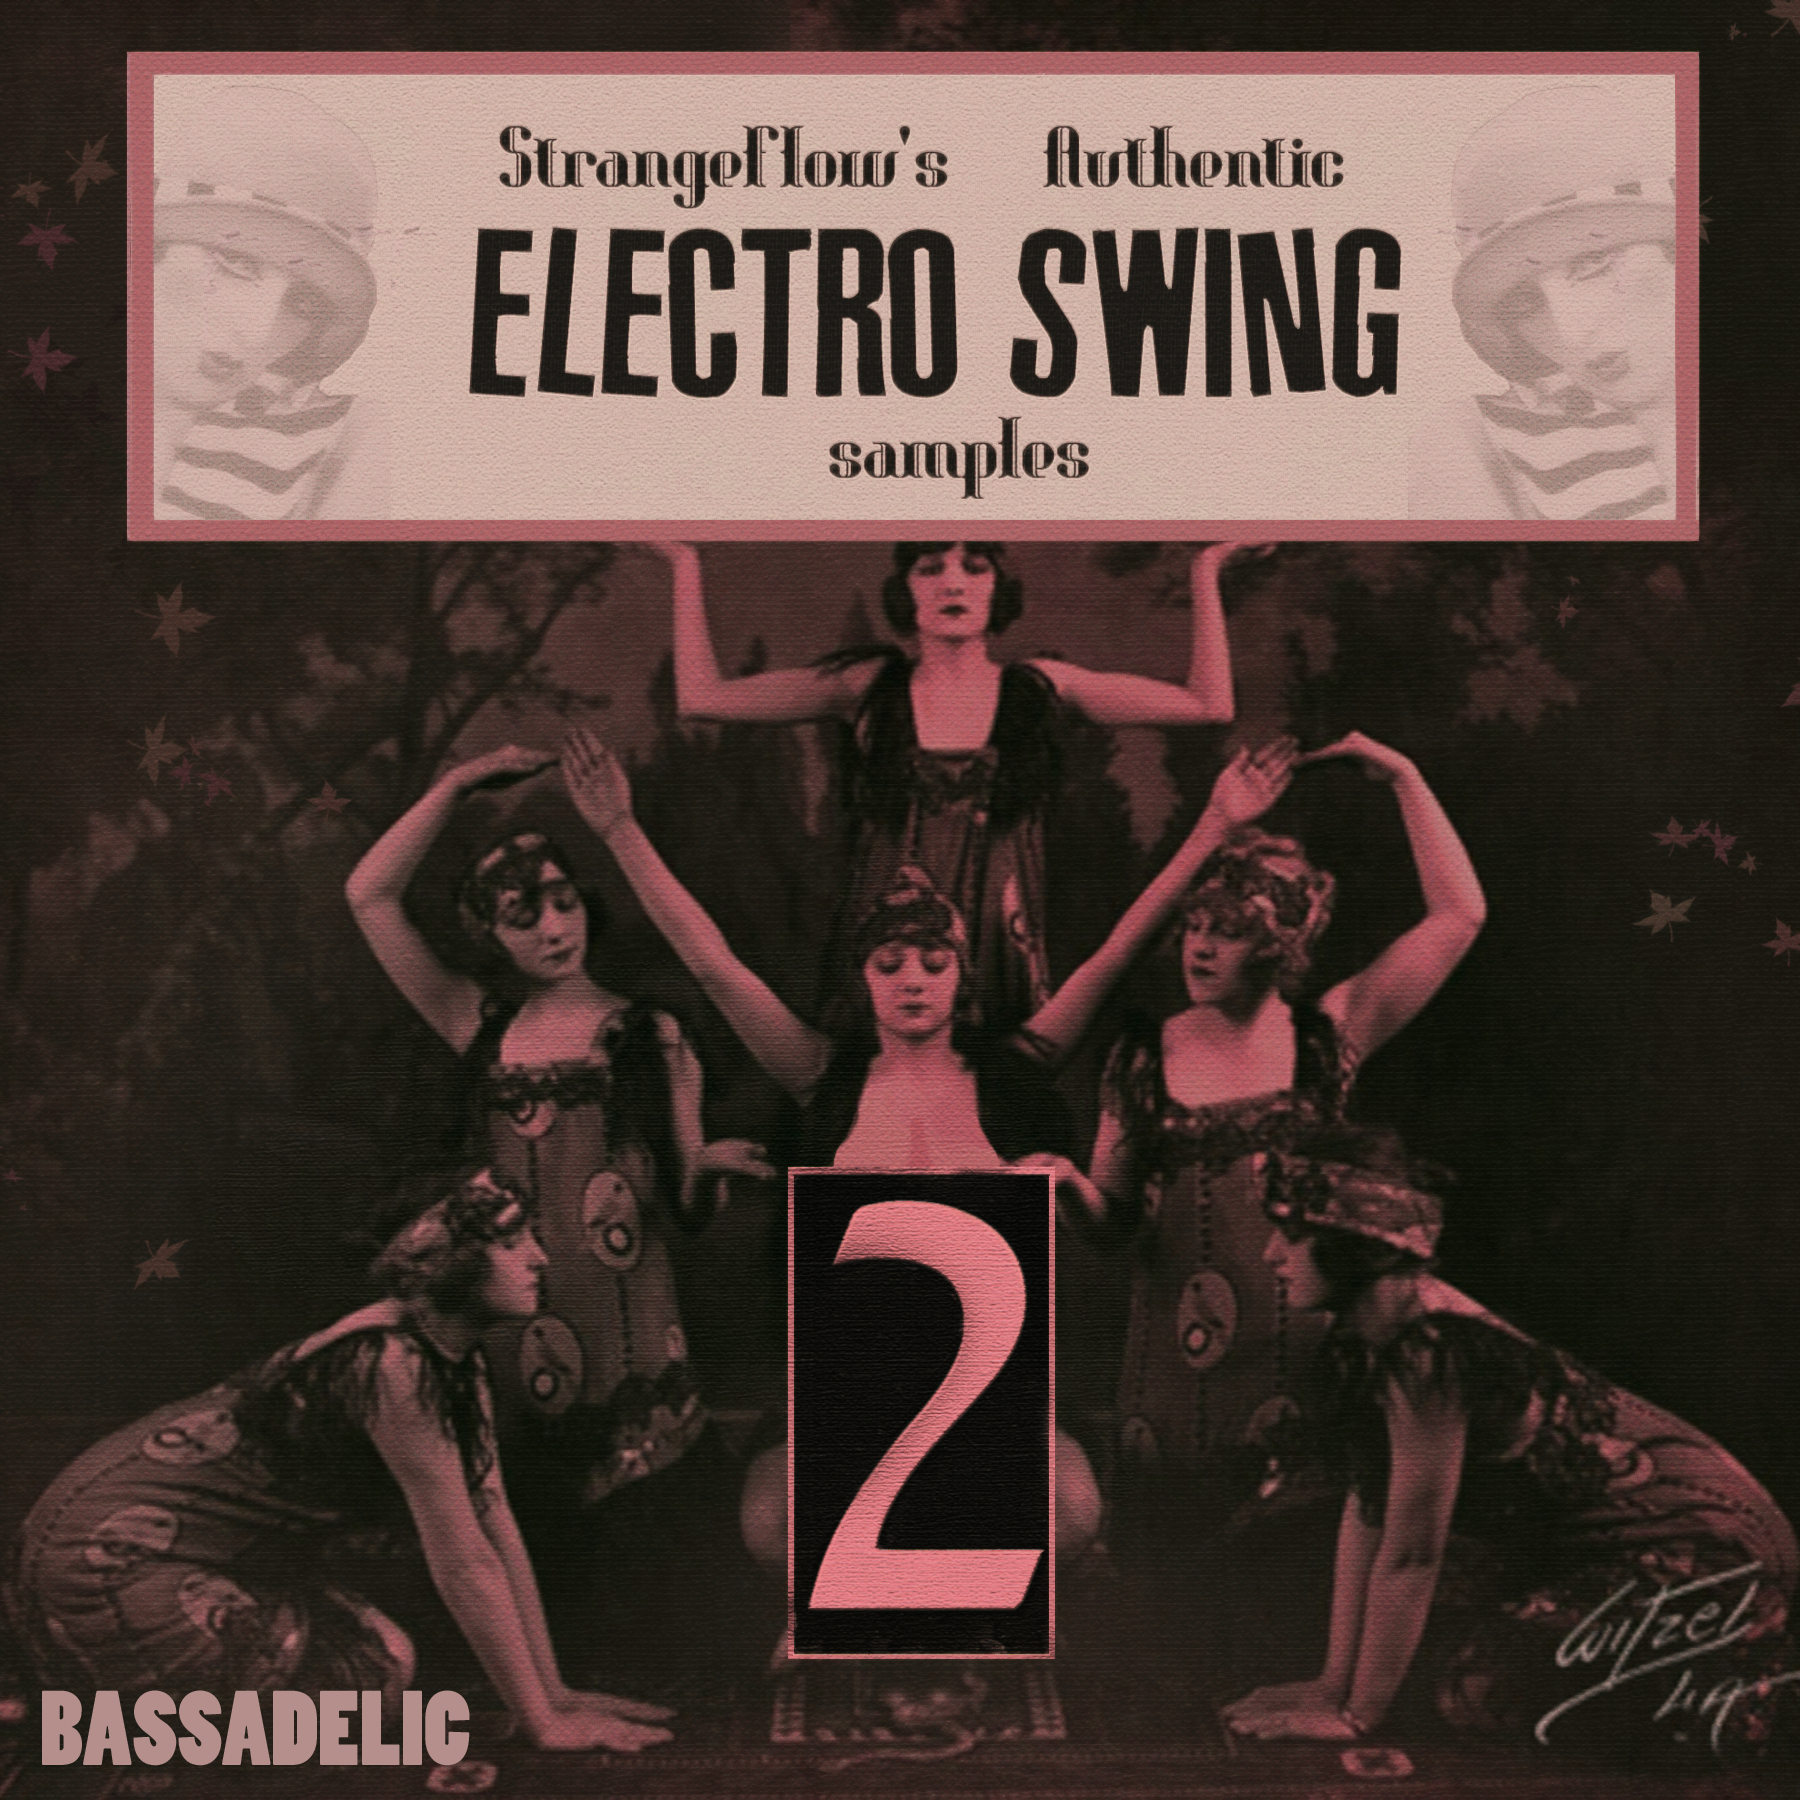 Free Electroswing Samples! - General - Bass Music Input Output